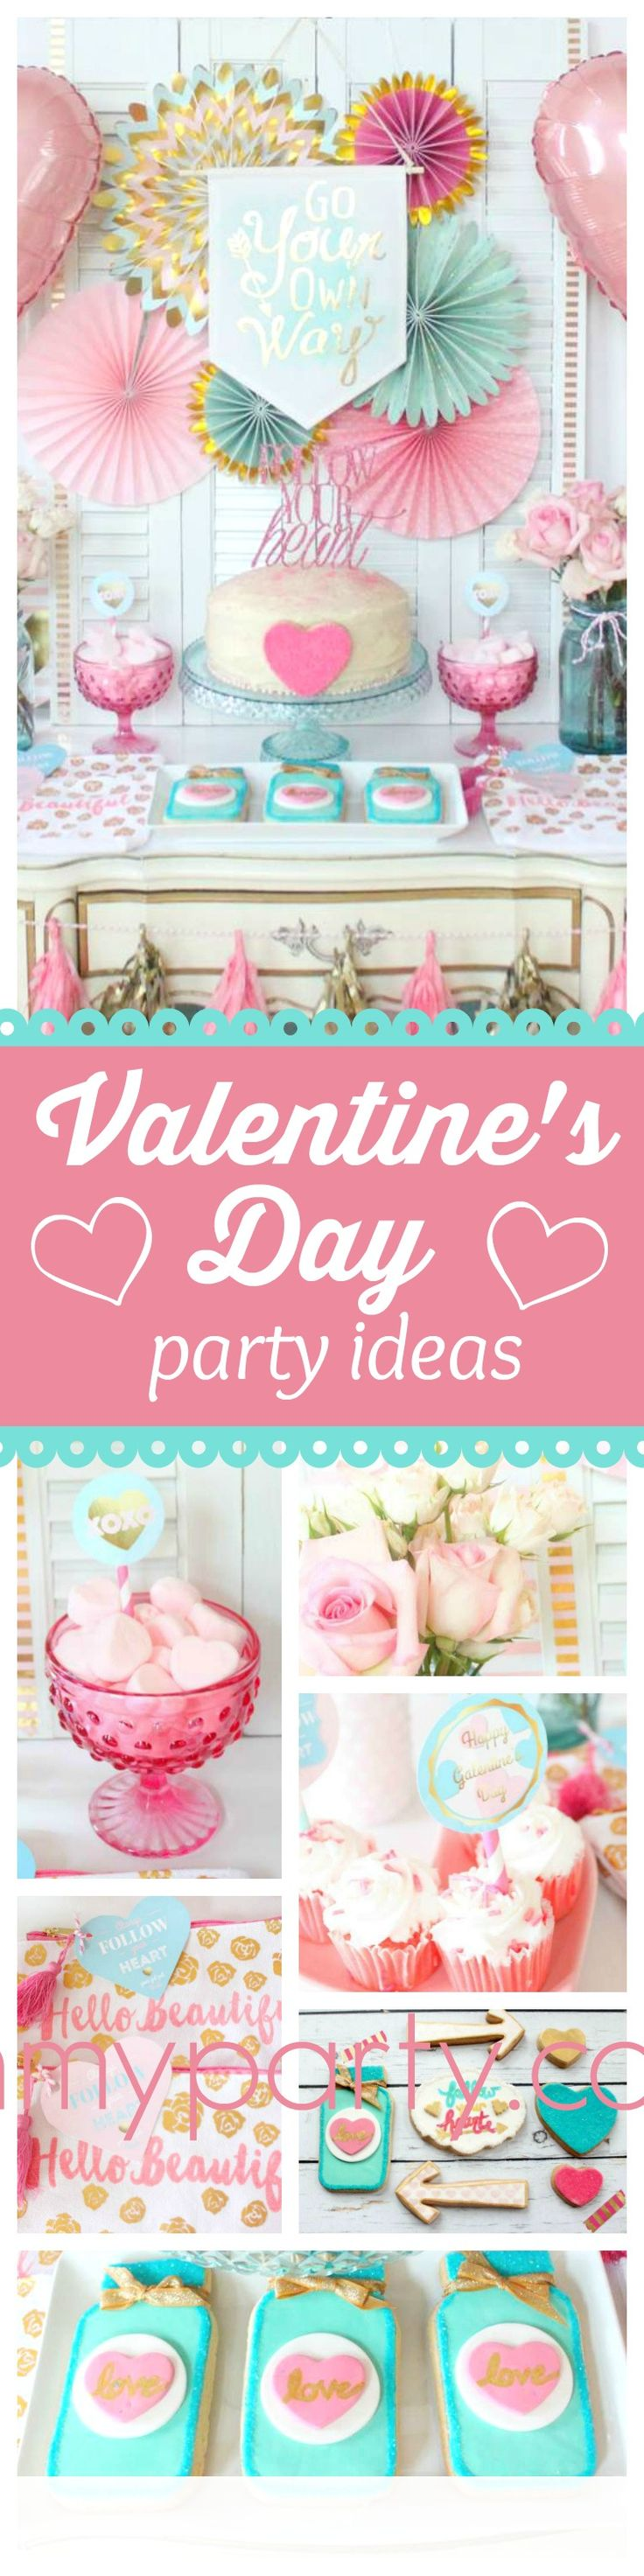 767 best Valentine's Day Party Ideas images on Pinterest | Parties ...